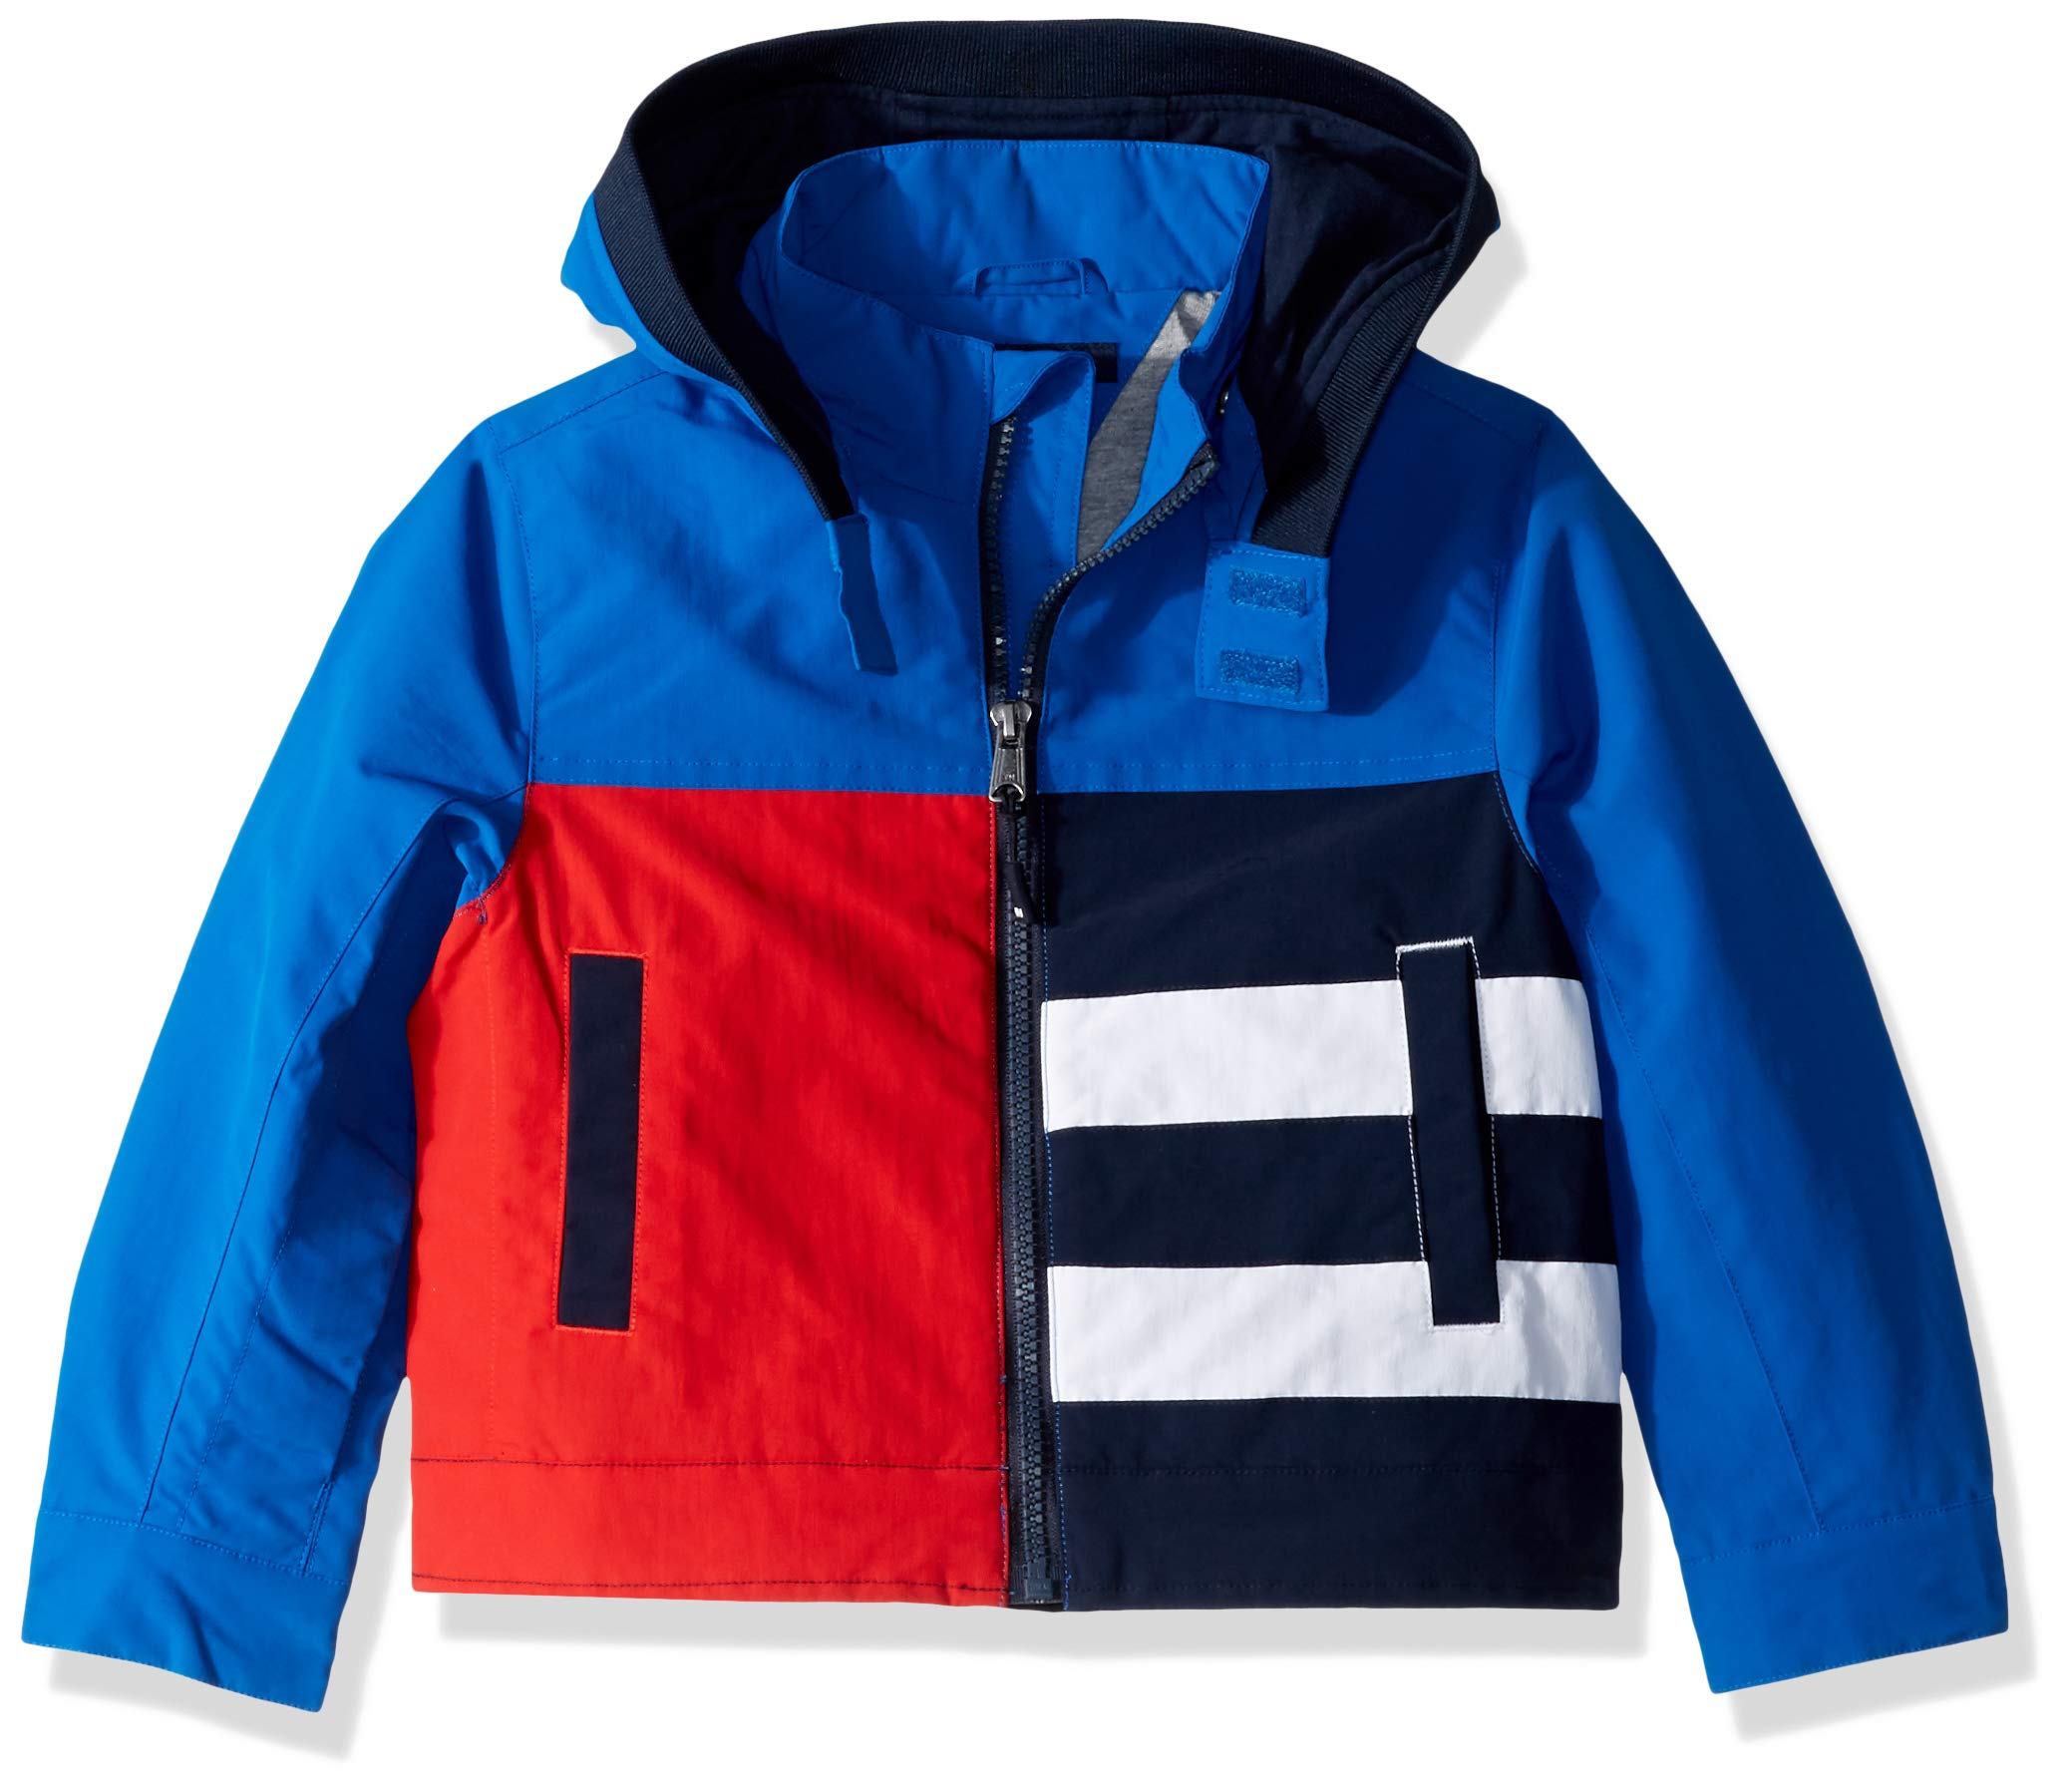 Tommy Hilfiger Boys' Adaptive Seated Fit Jacket with Velcro Brand Closure, Turkish Sea S